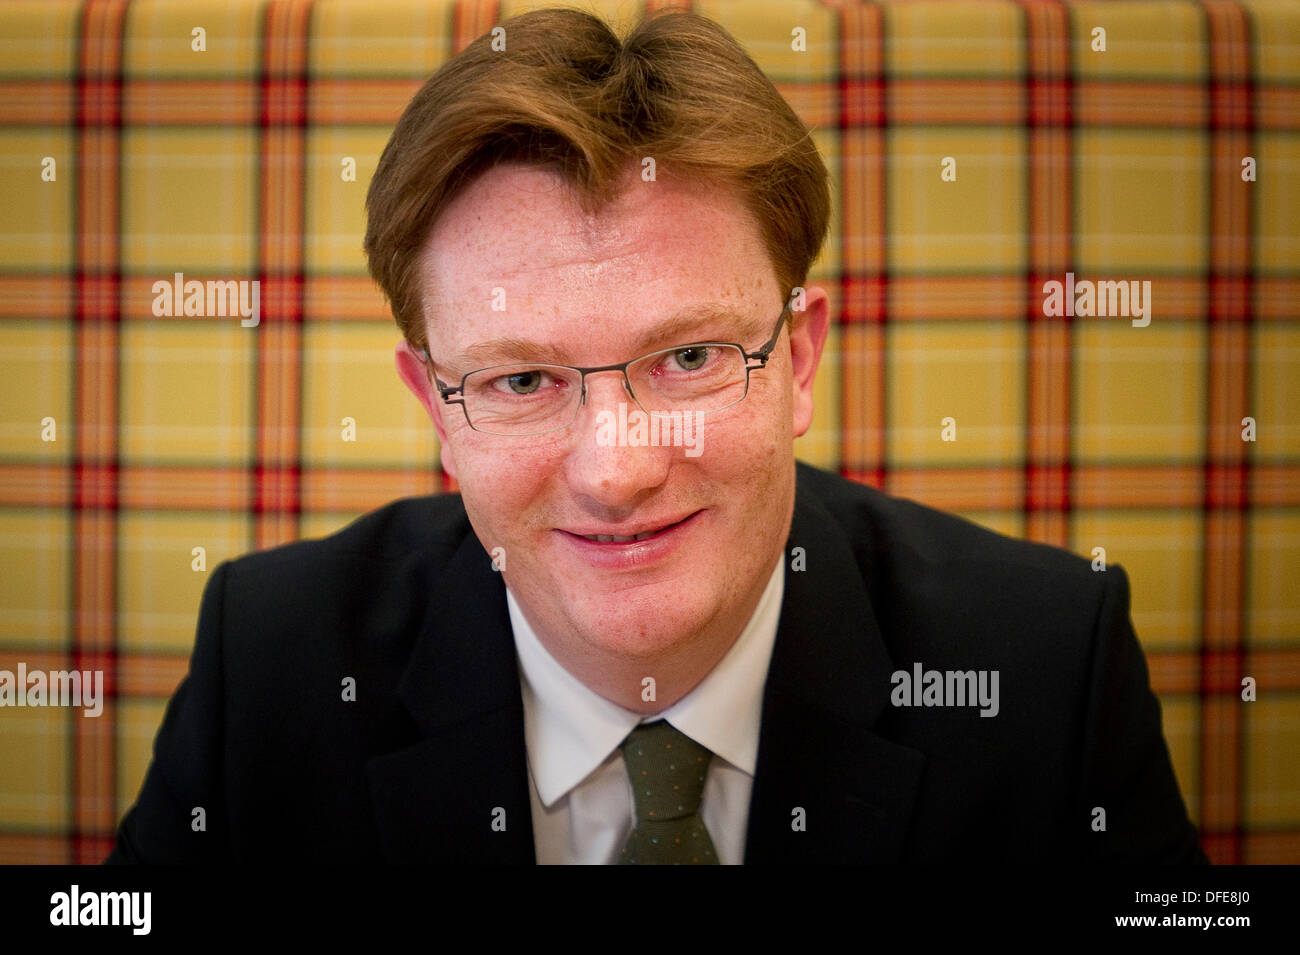 Edinburgh, UK. 3rd October 2013. Keynote speakers Danny Alexander MP, Chief Secretary to the Treasury, HM Government at the Novotel Central at the Scotland 2020: Conference on Realising the opportunities of an ageing population. Credit Steven Scott Taylor/ Alamy Live News - Stock Image